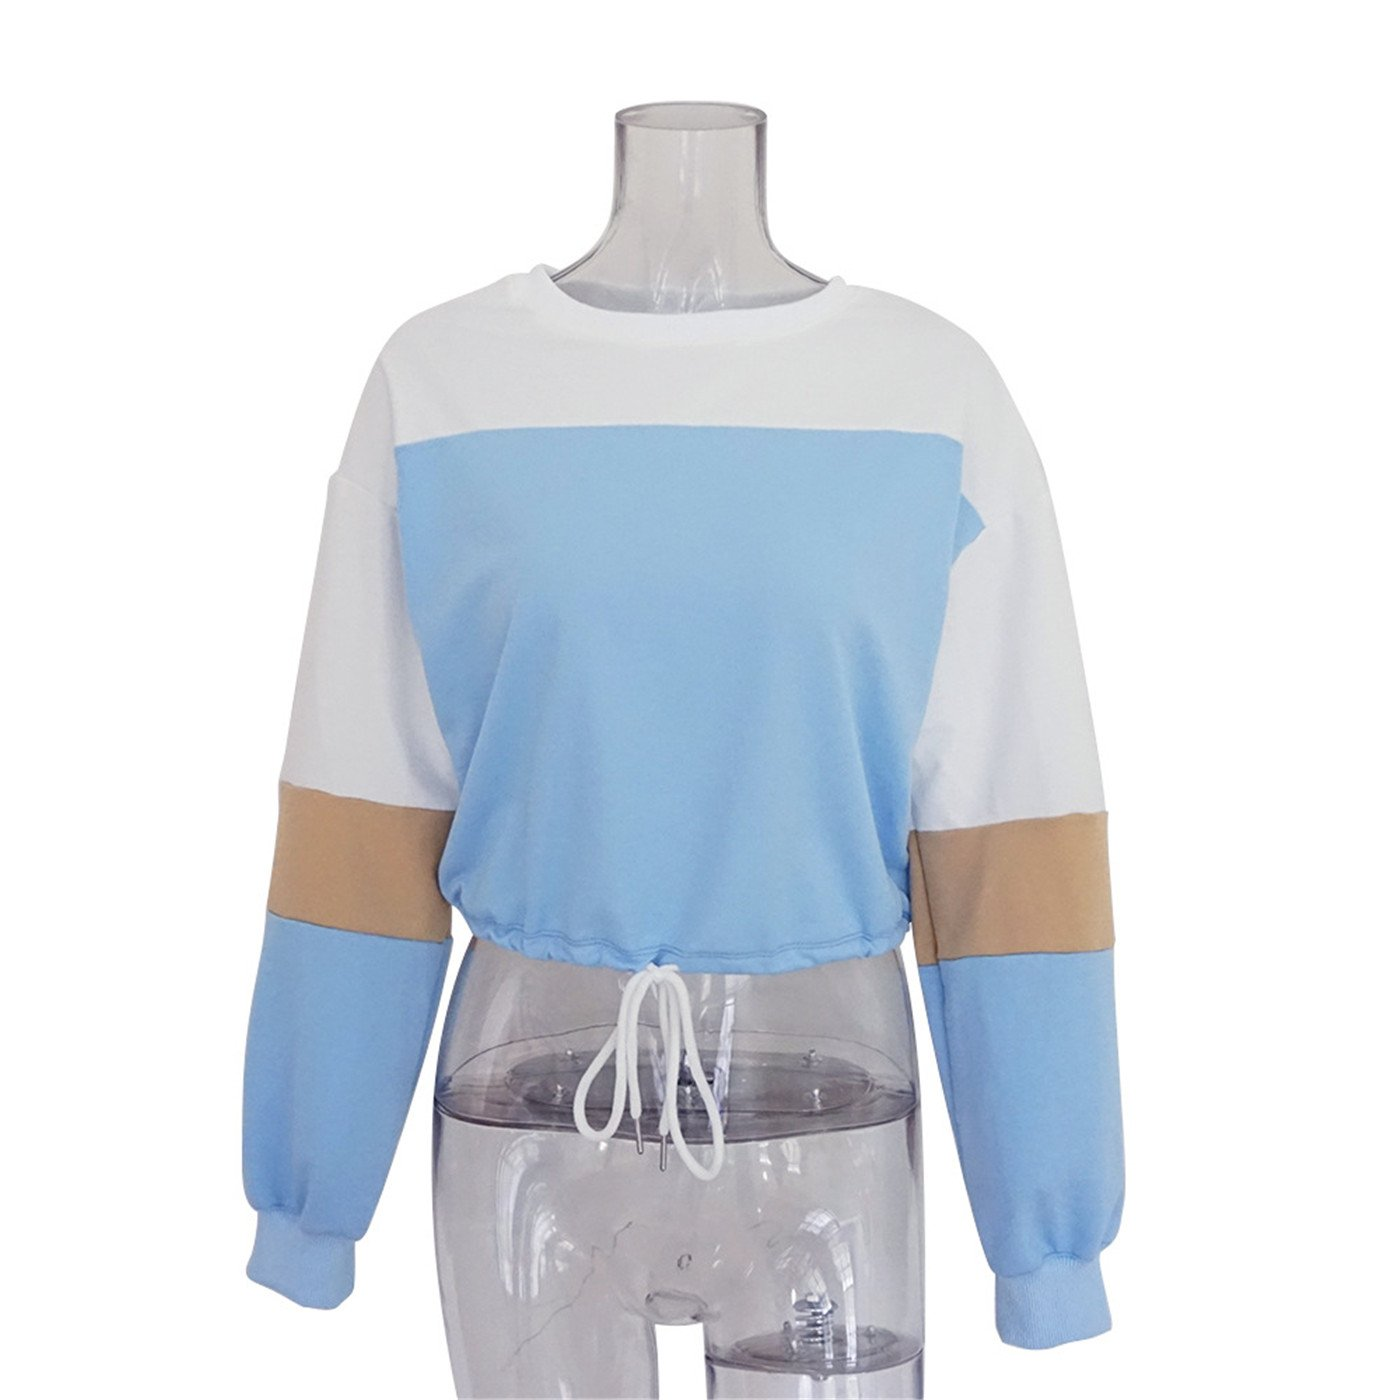 ULUIKY Occident Style Womens Long Sleeve Round Neck Cropped Loose Color Block Sweatshirt Top (XL, Blue)